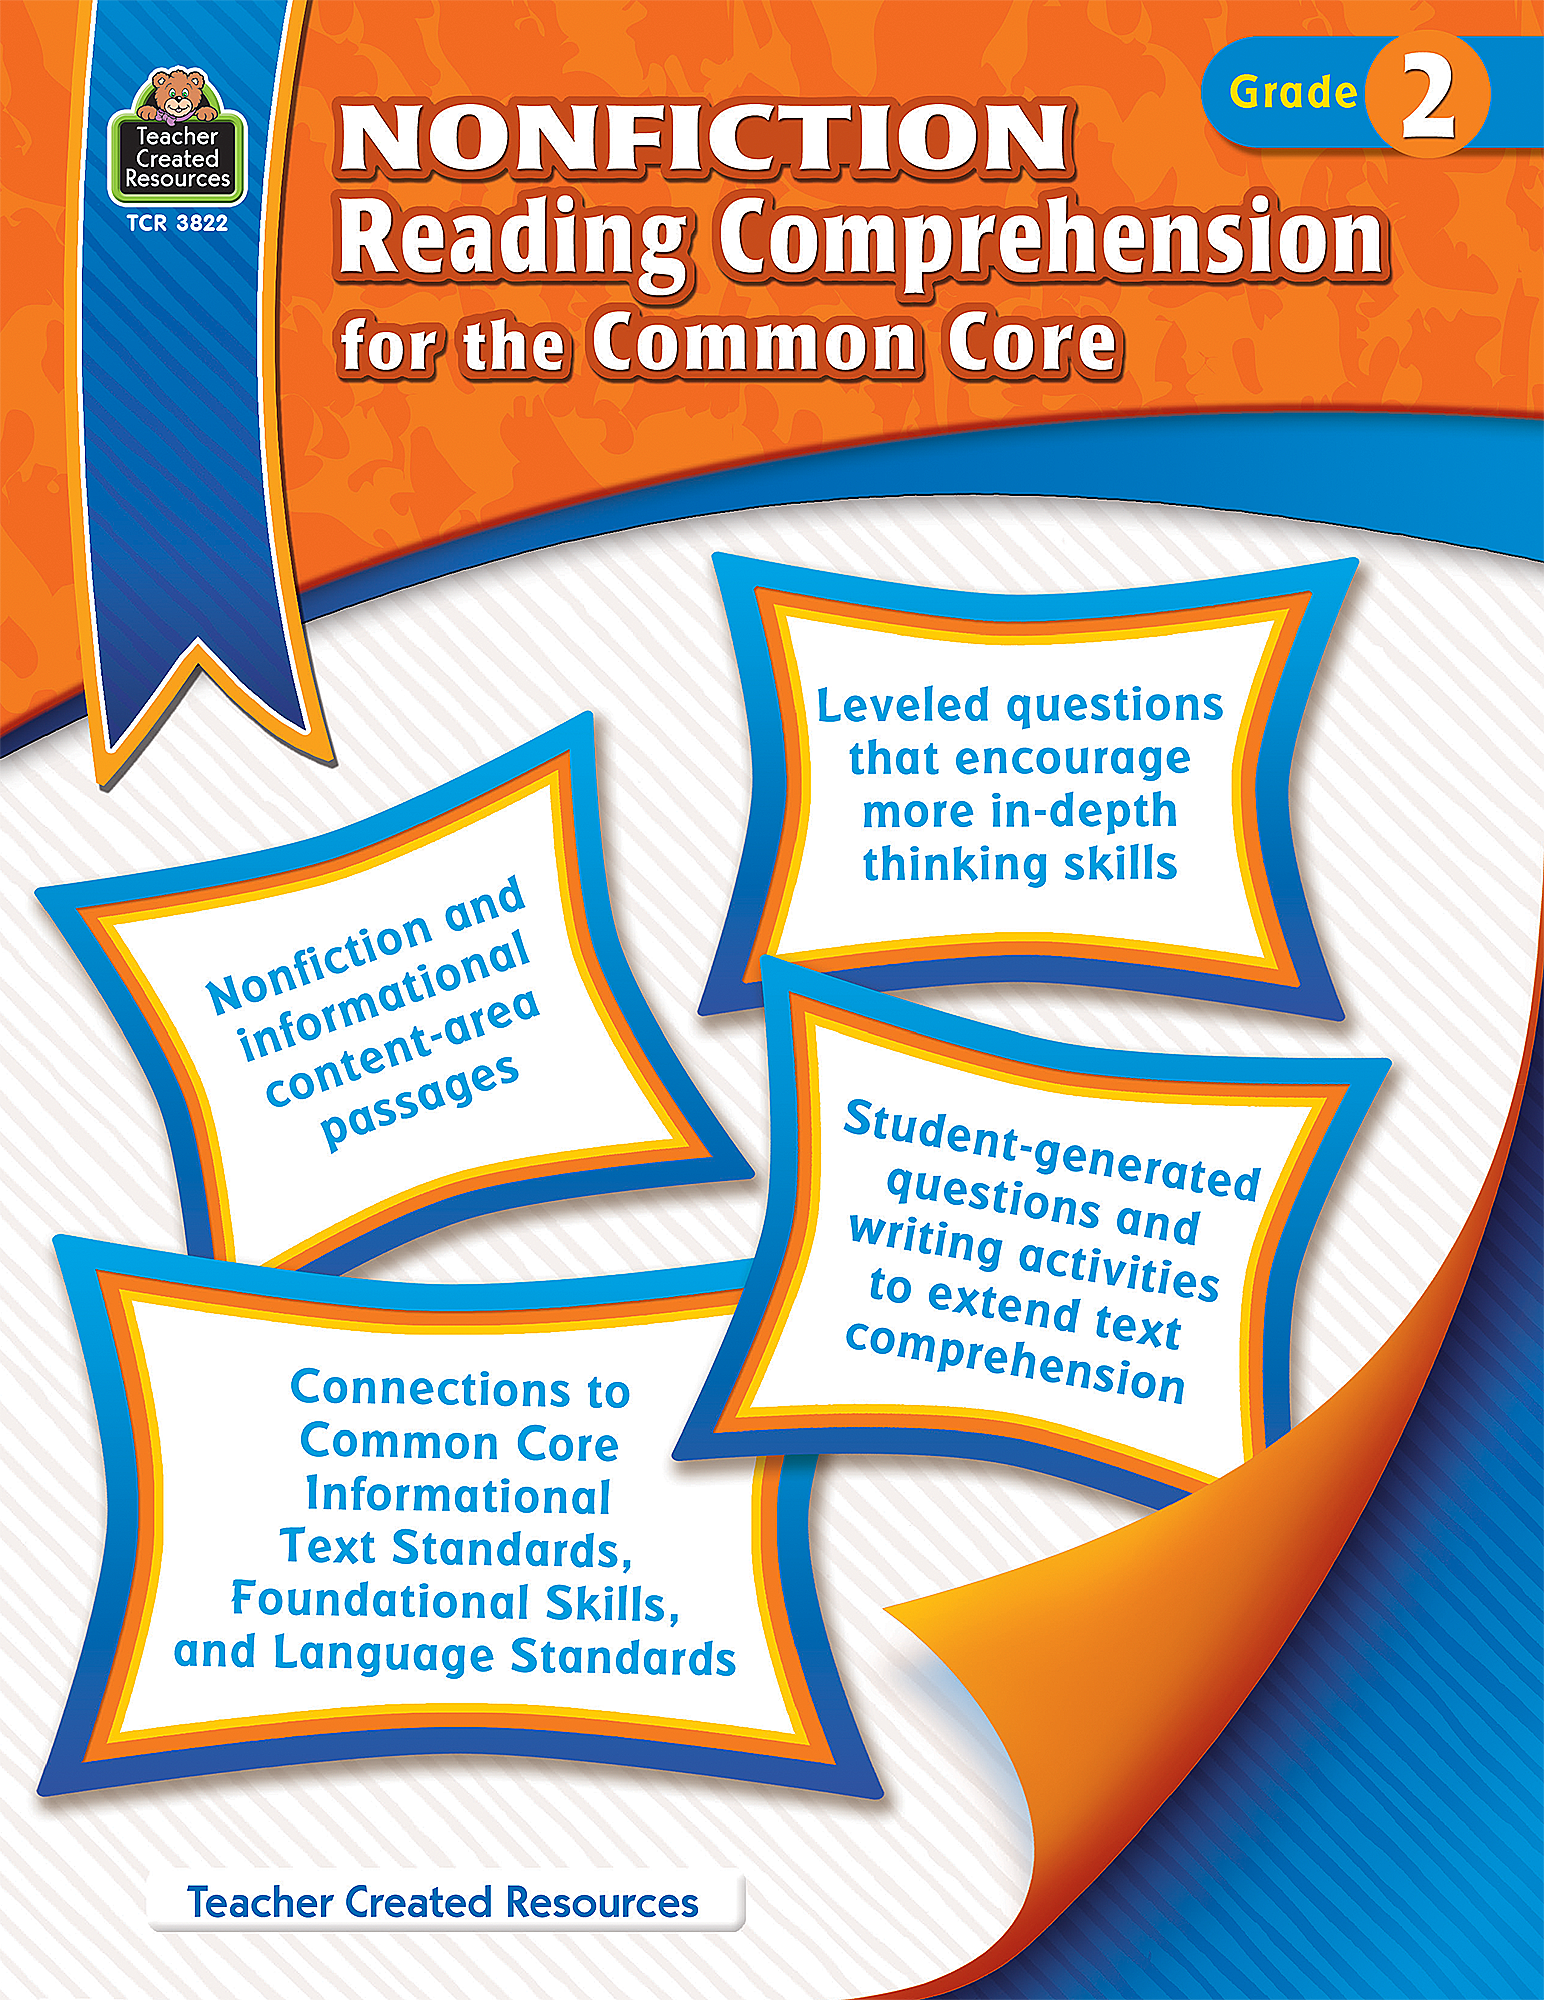 nonfiction reading comprehension for the common core grade  nonfiction reading comprehension for the common core grade 2 tcr3822 teacher created resources